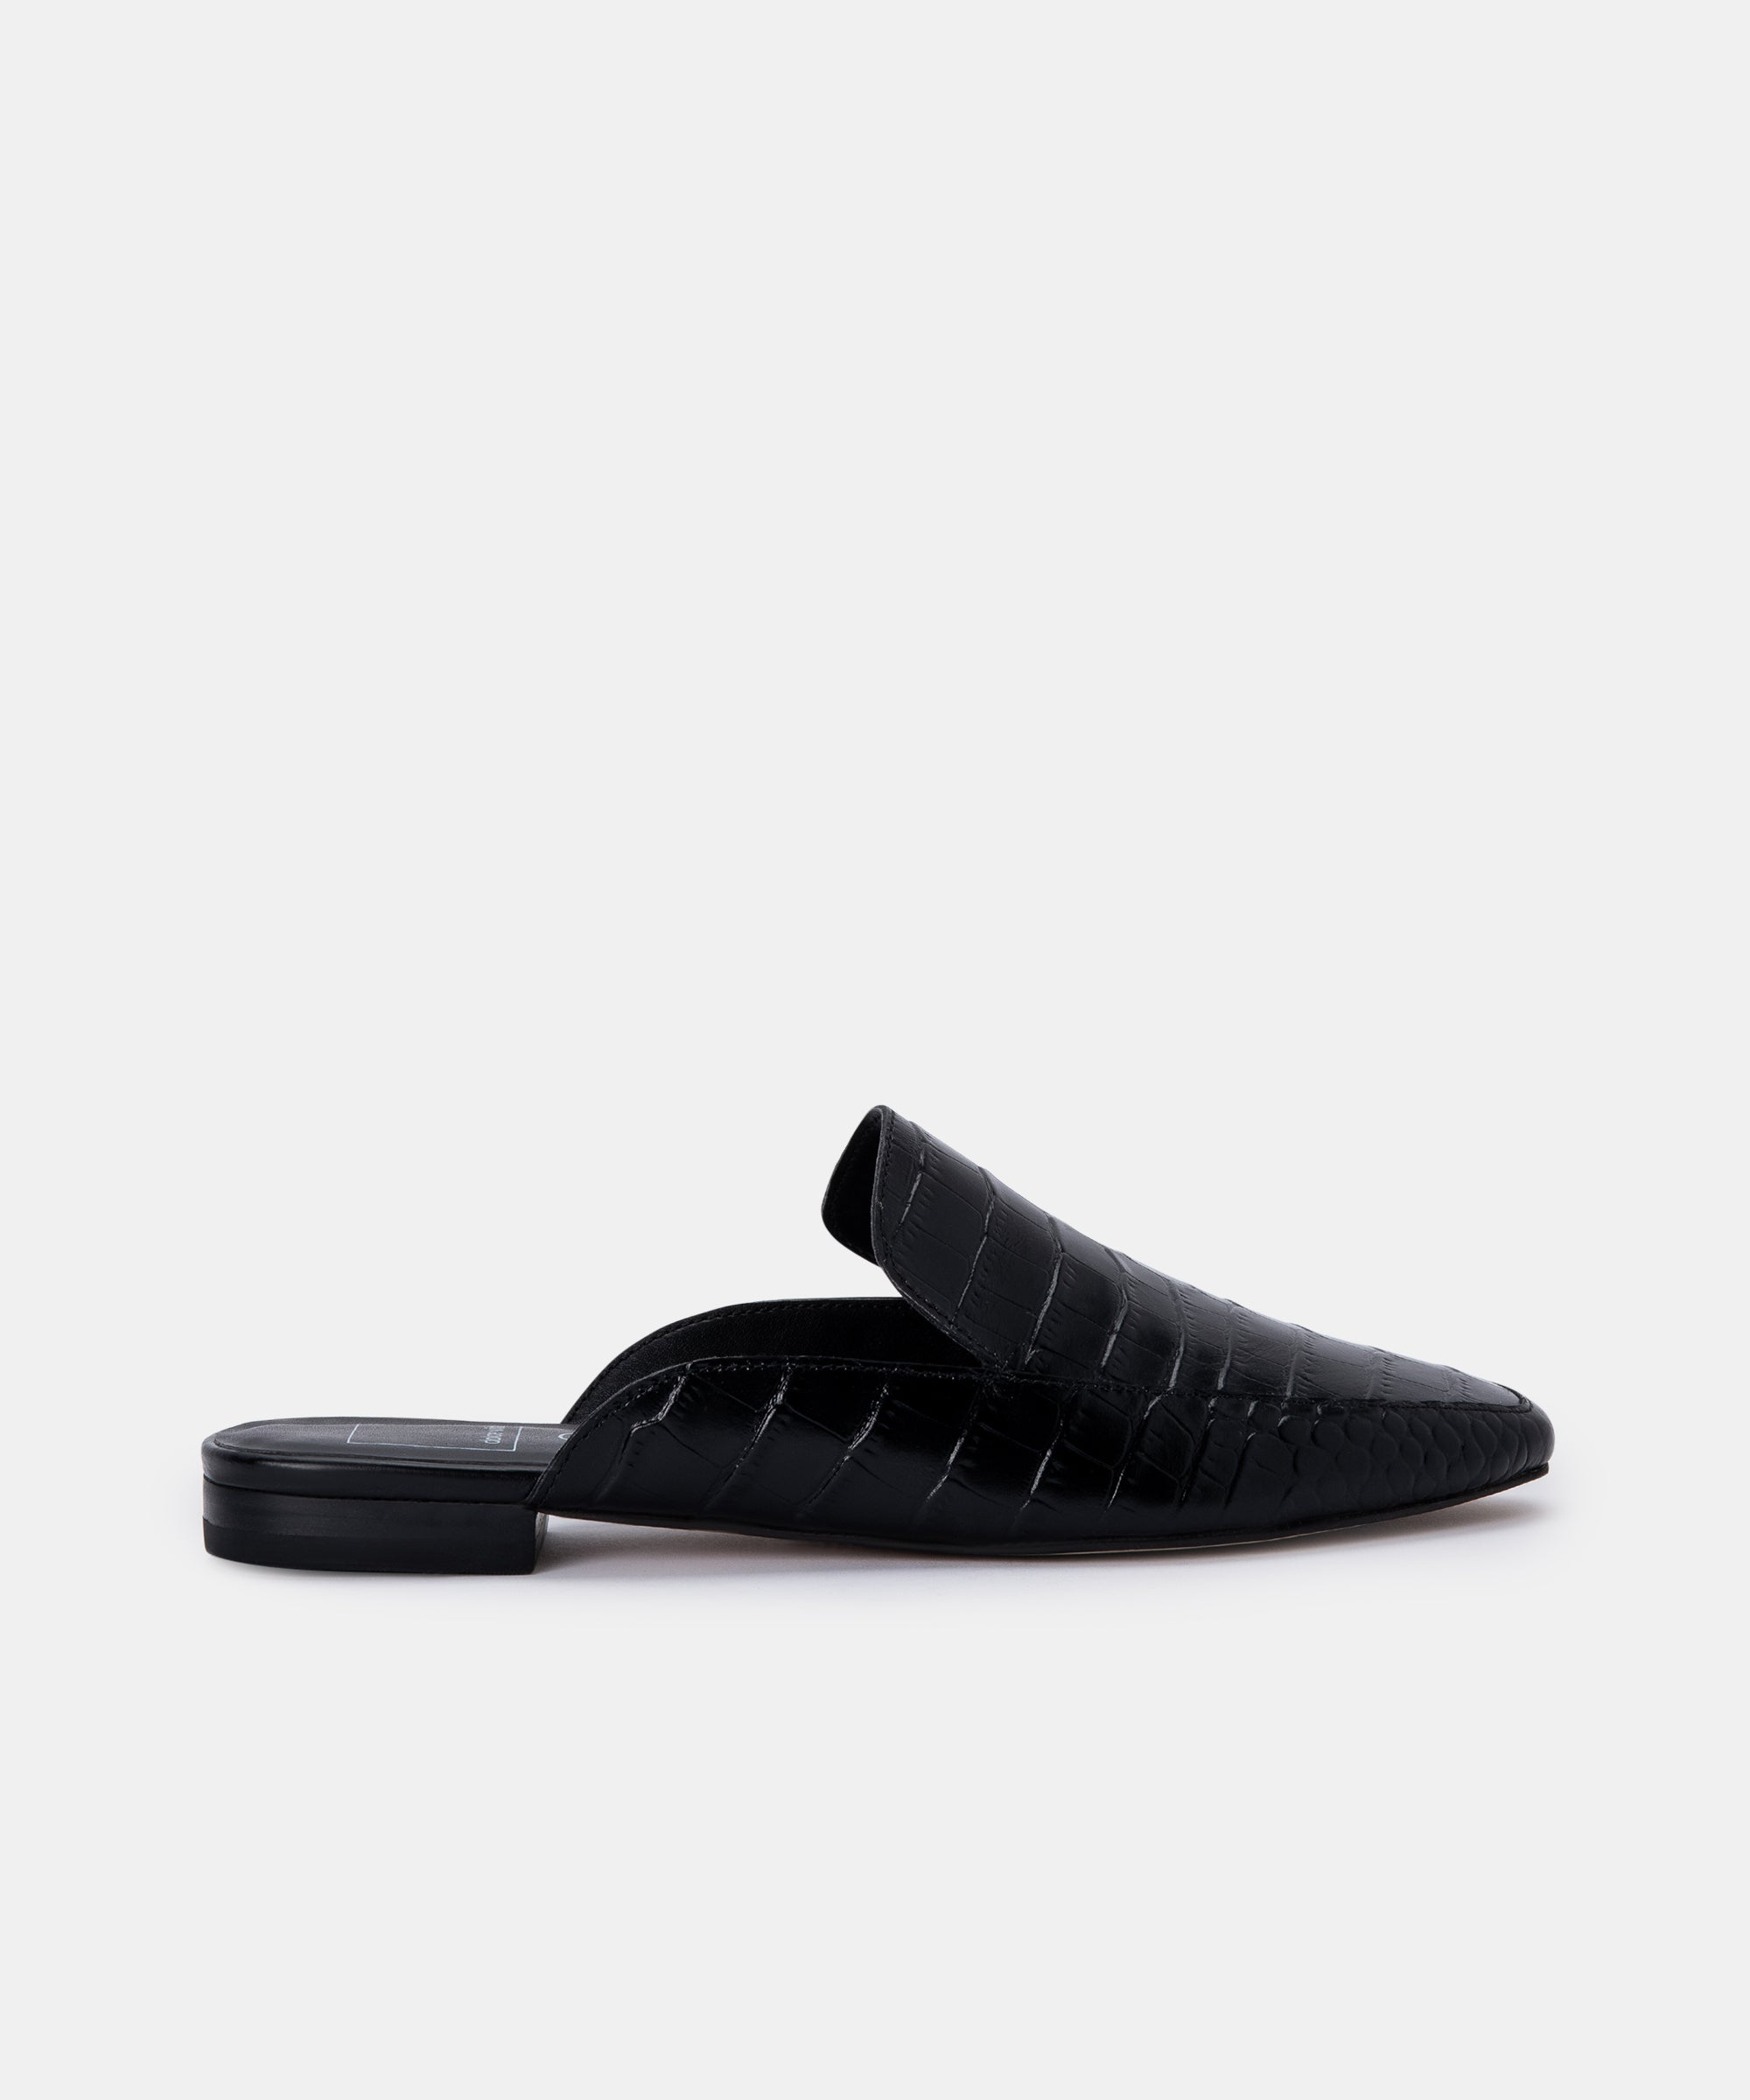 HARMNY FLATS IN NOIR CROC LEATHER